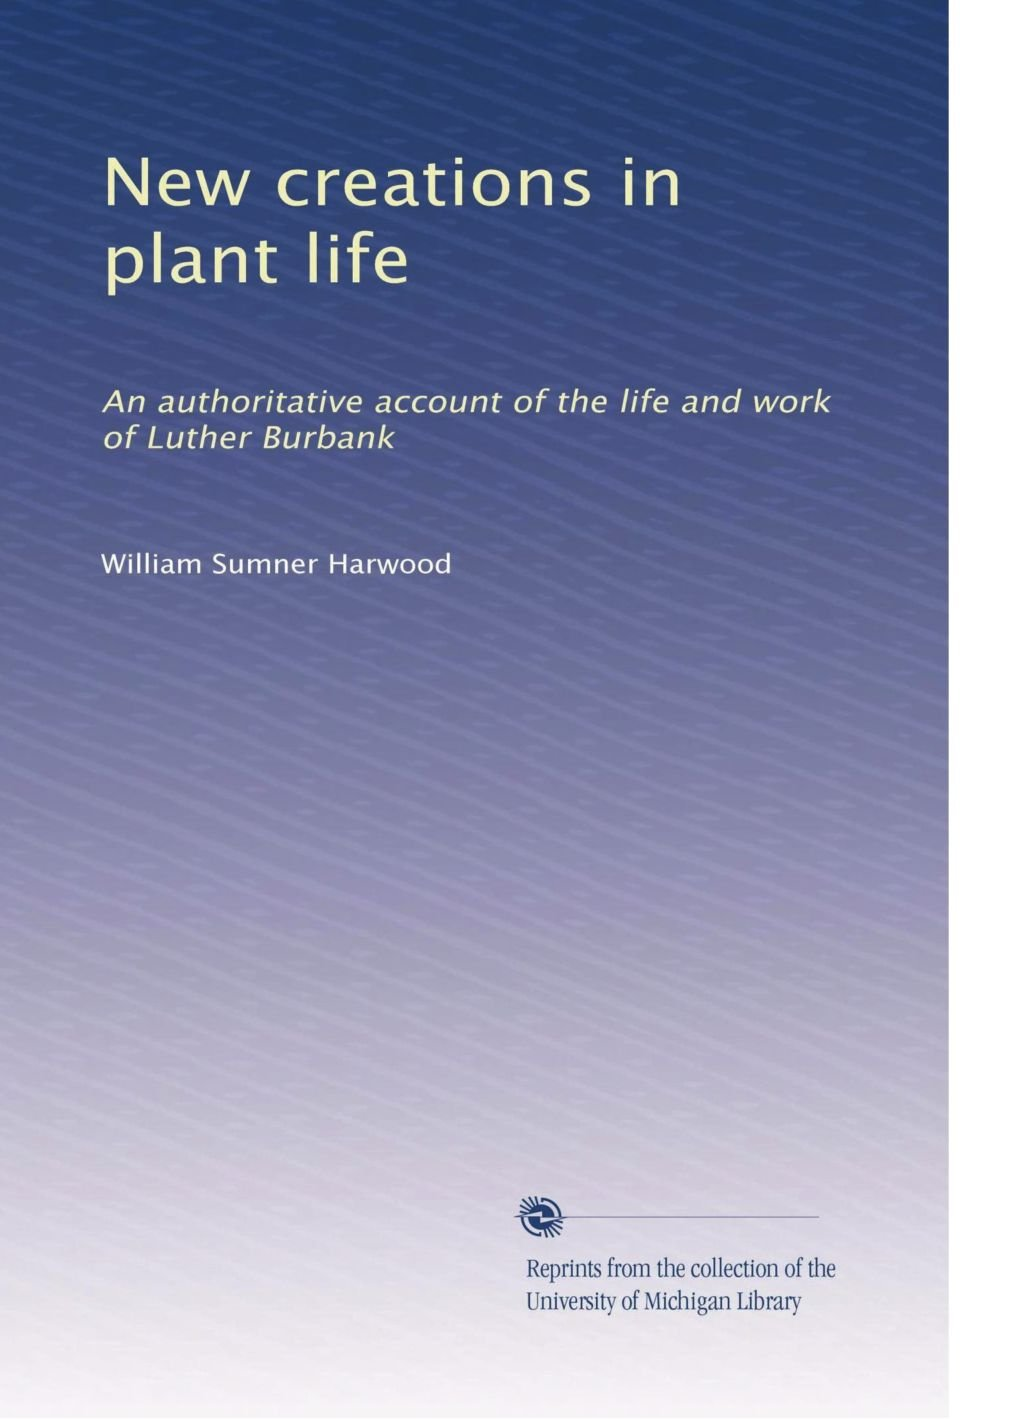 New creations in plant life: An authoritative account of the life and work of Luther Burbank PDF